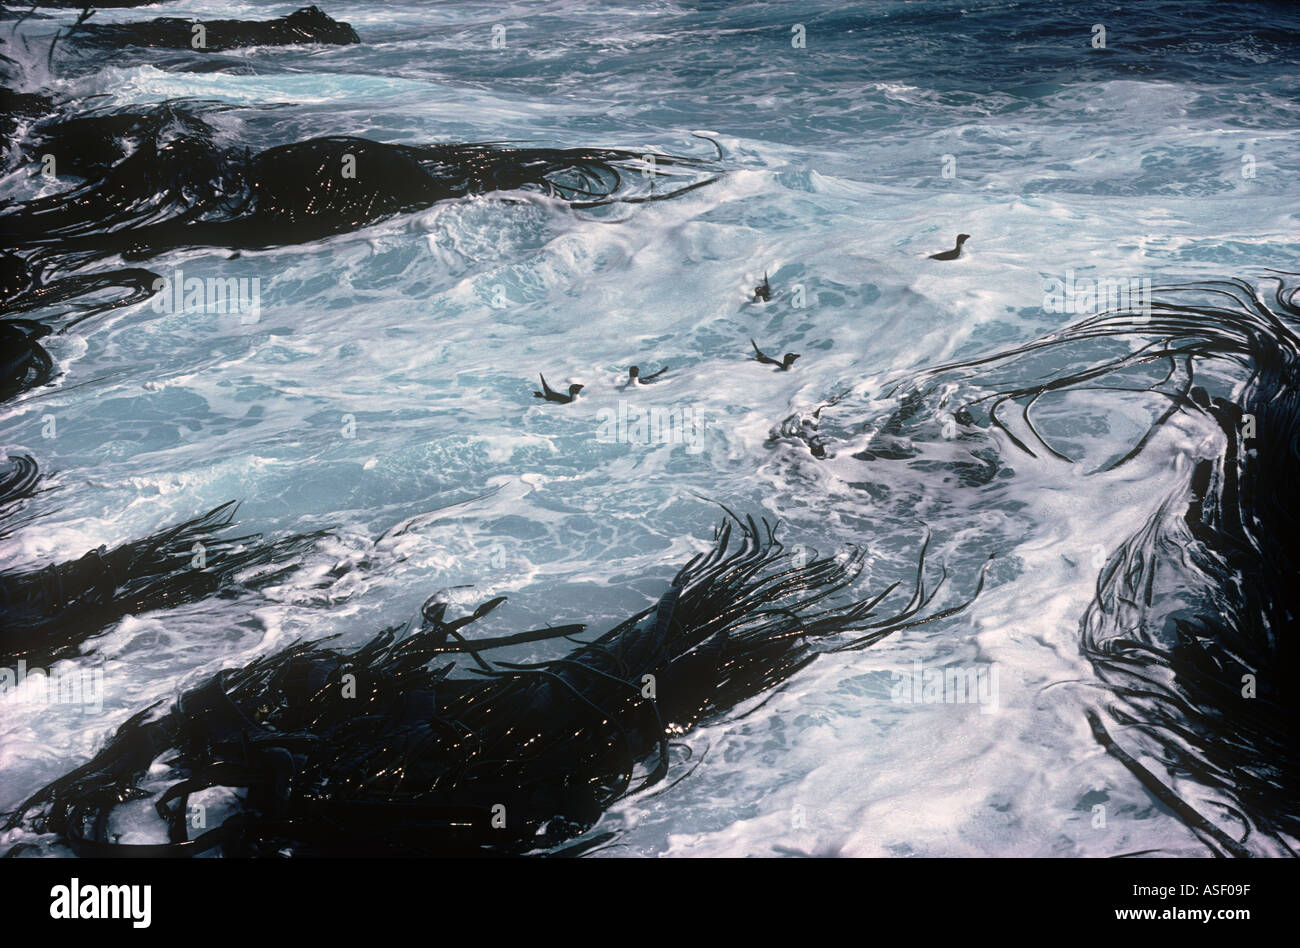 Rockhopper penguins Eudyptes chrysocome Swimming in surf zone near bull kelp Relaxed Campell Island New Zealand - Stock Image